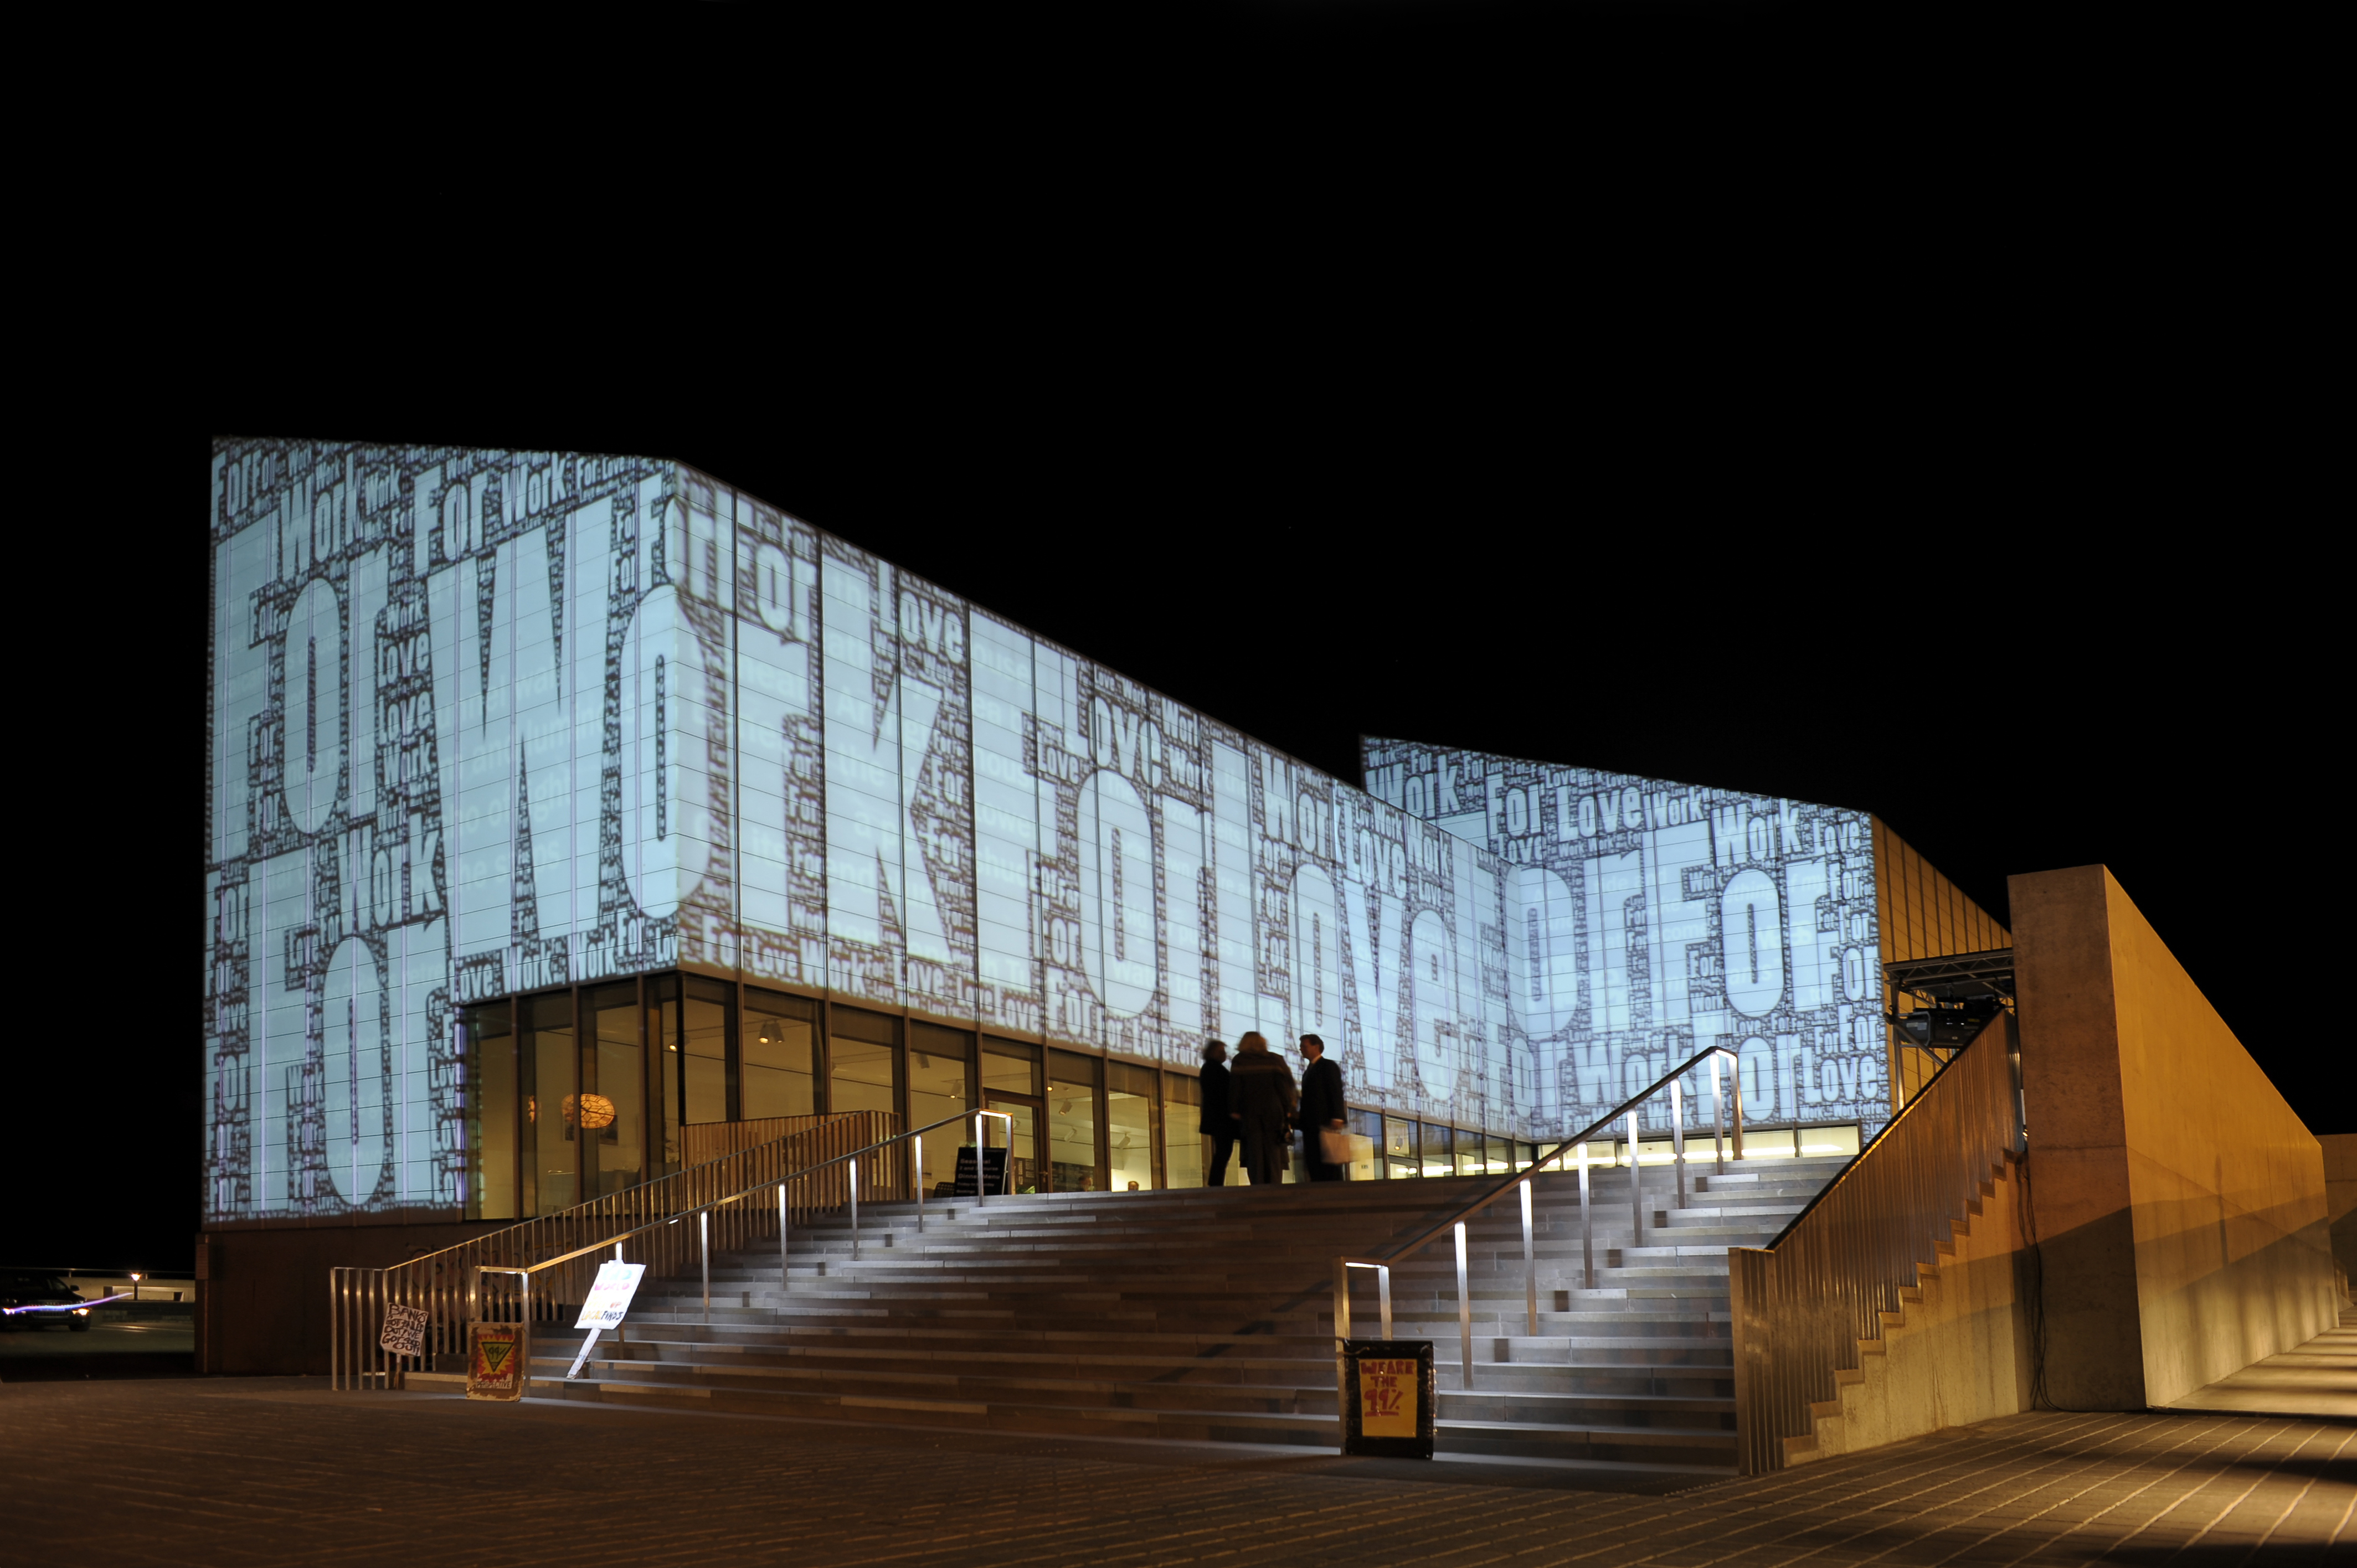 The Turner Contemporary, which opened in 2011